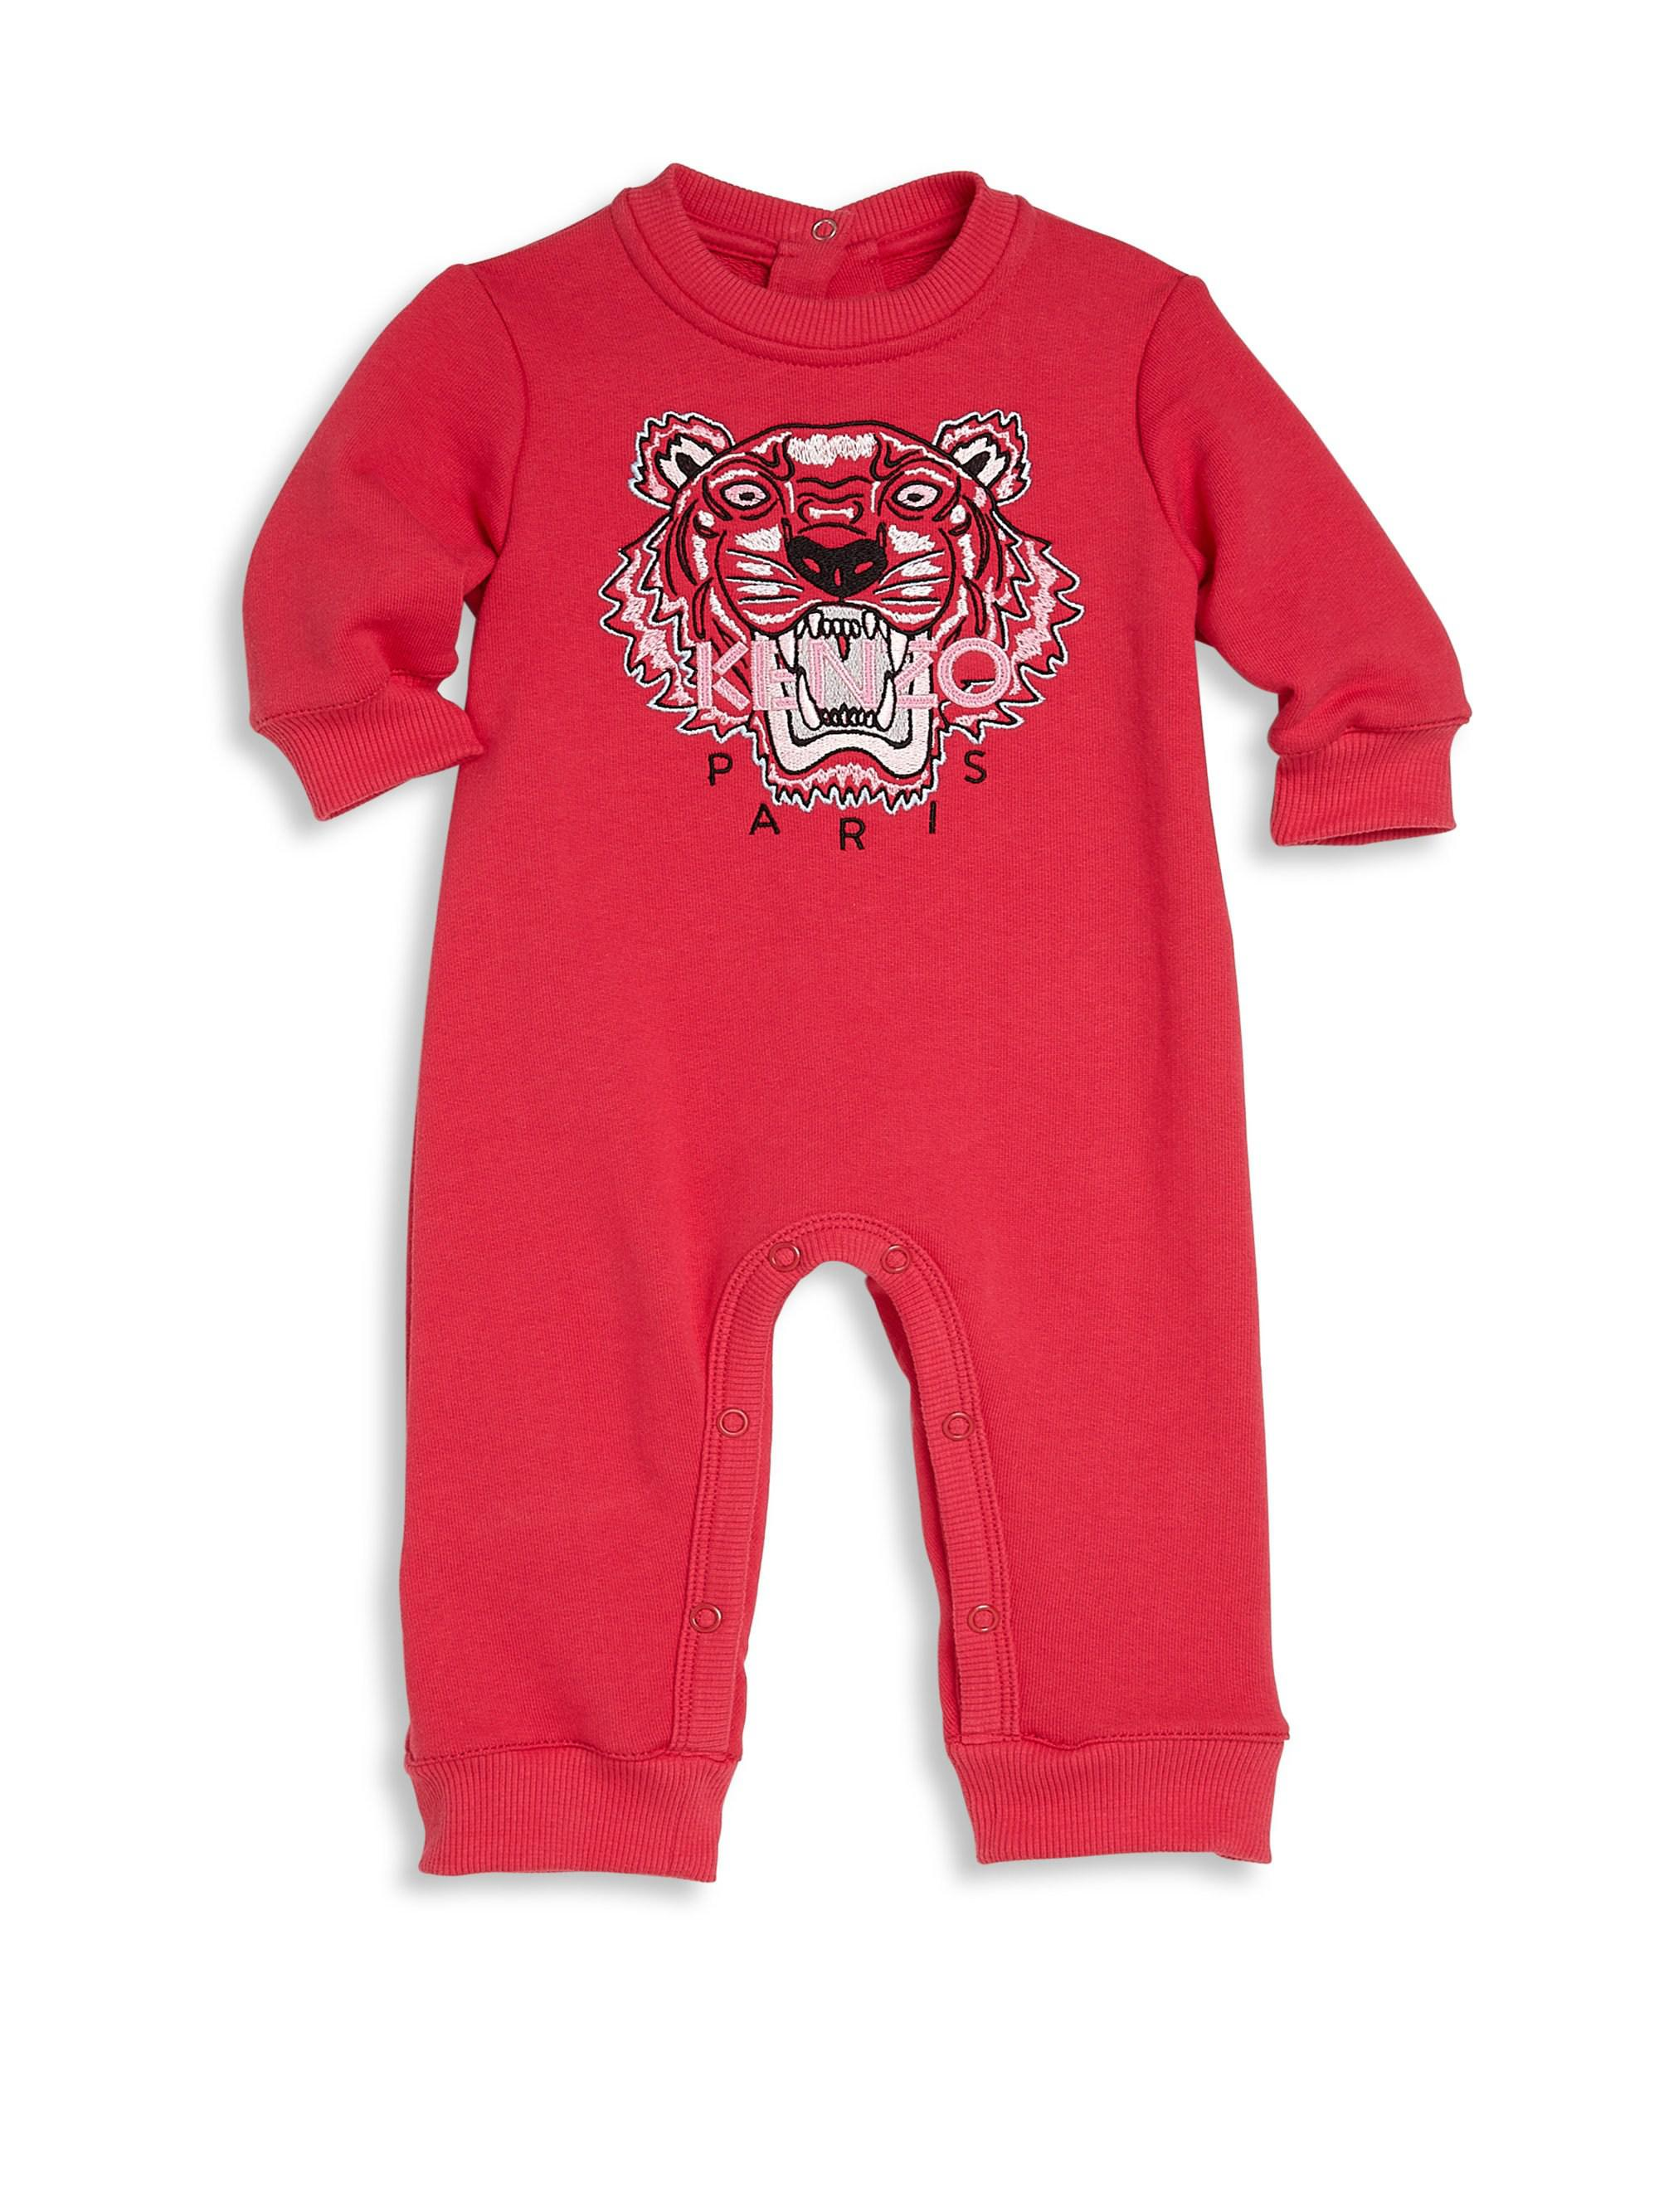 05fe930b1 Kenzo Baby Girl s Tiger Embroidered Cotton Romper in Red - Lyst